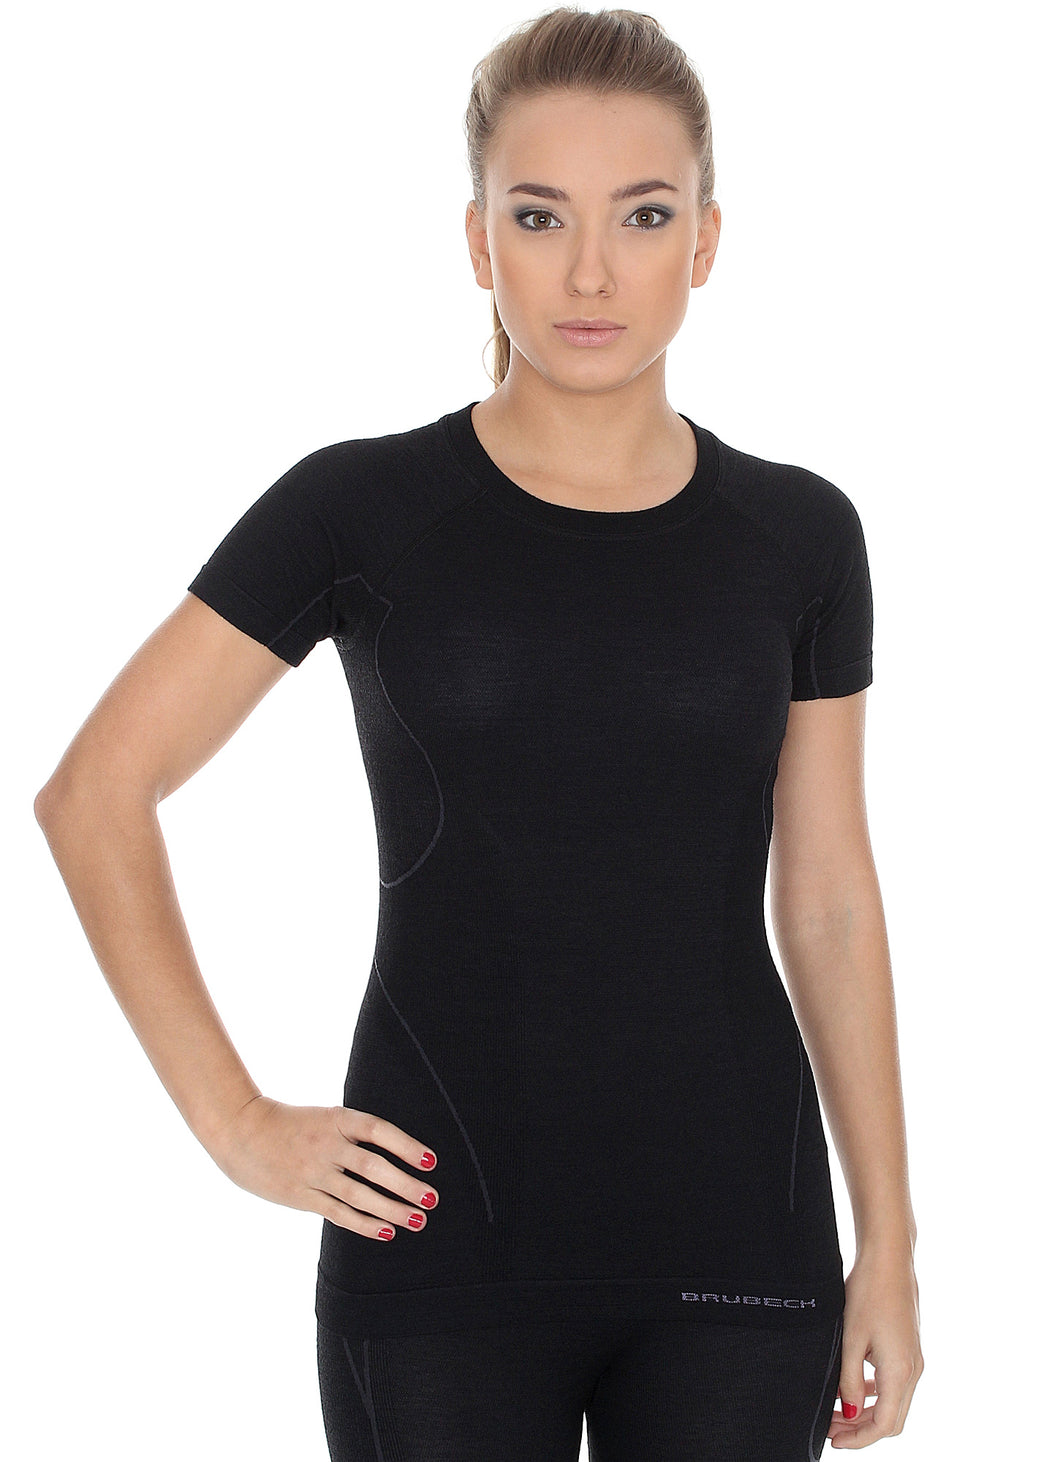 Women's Top ACTIVE WOOL Short Sleeve Black